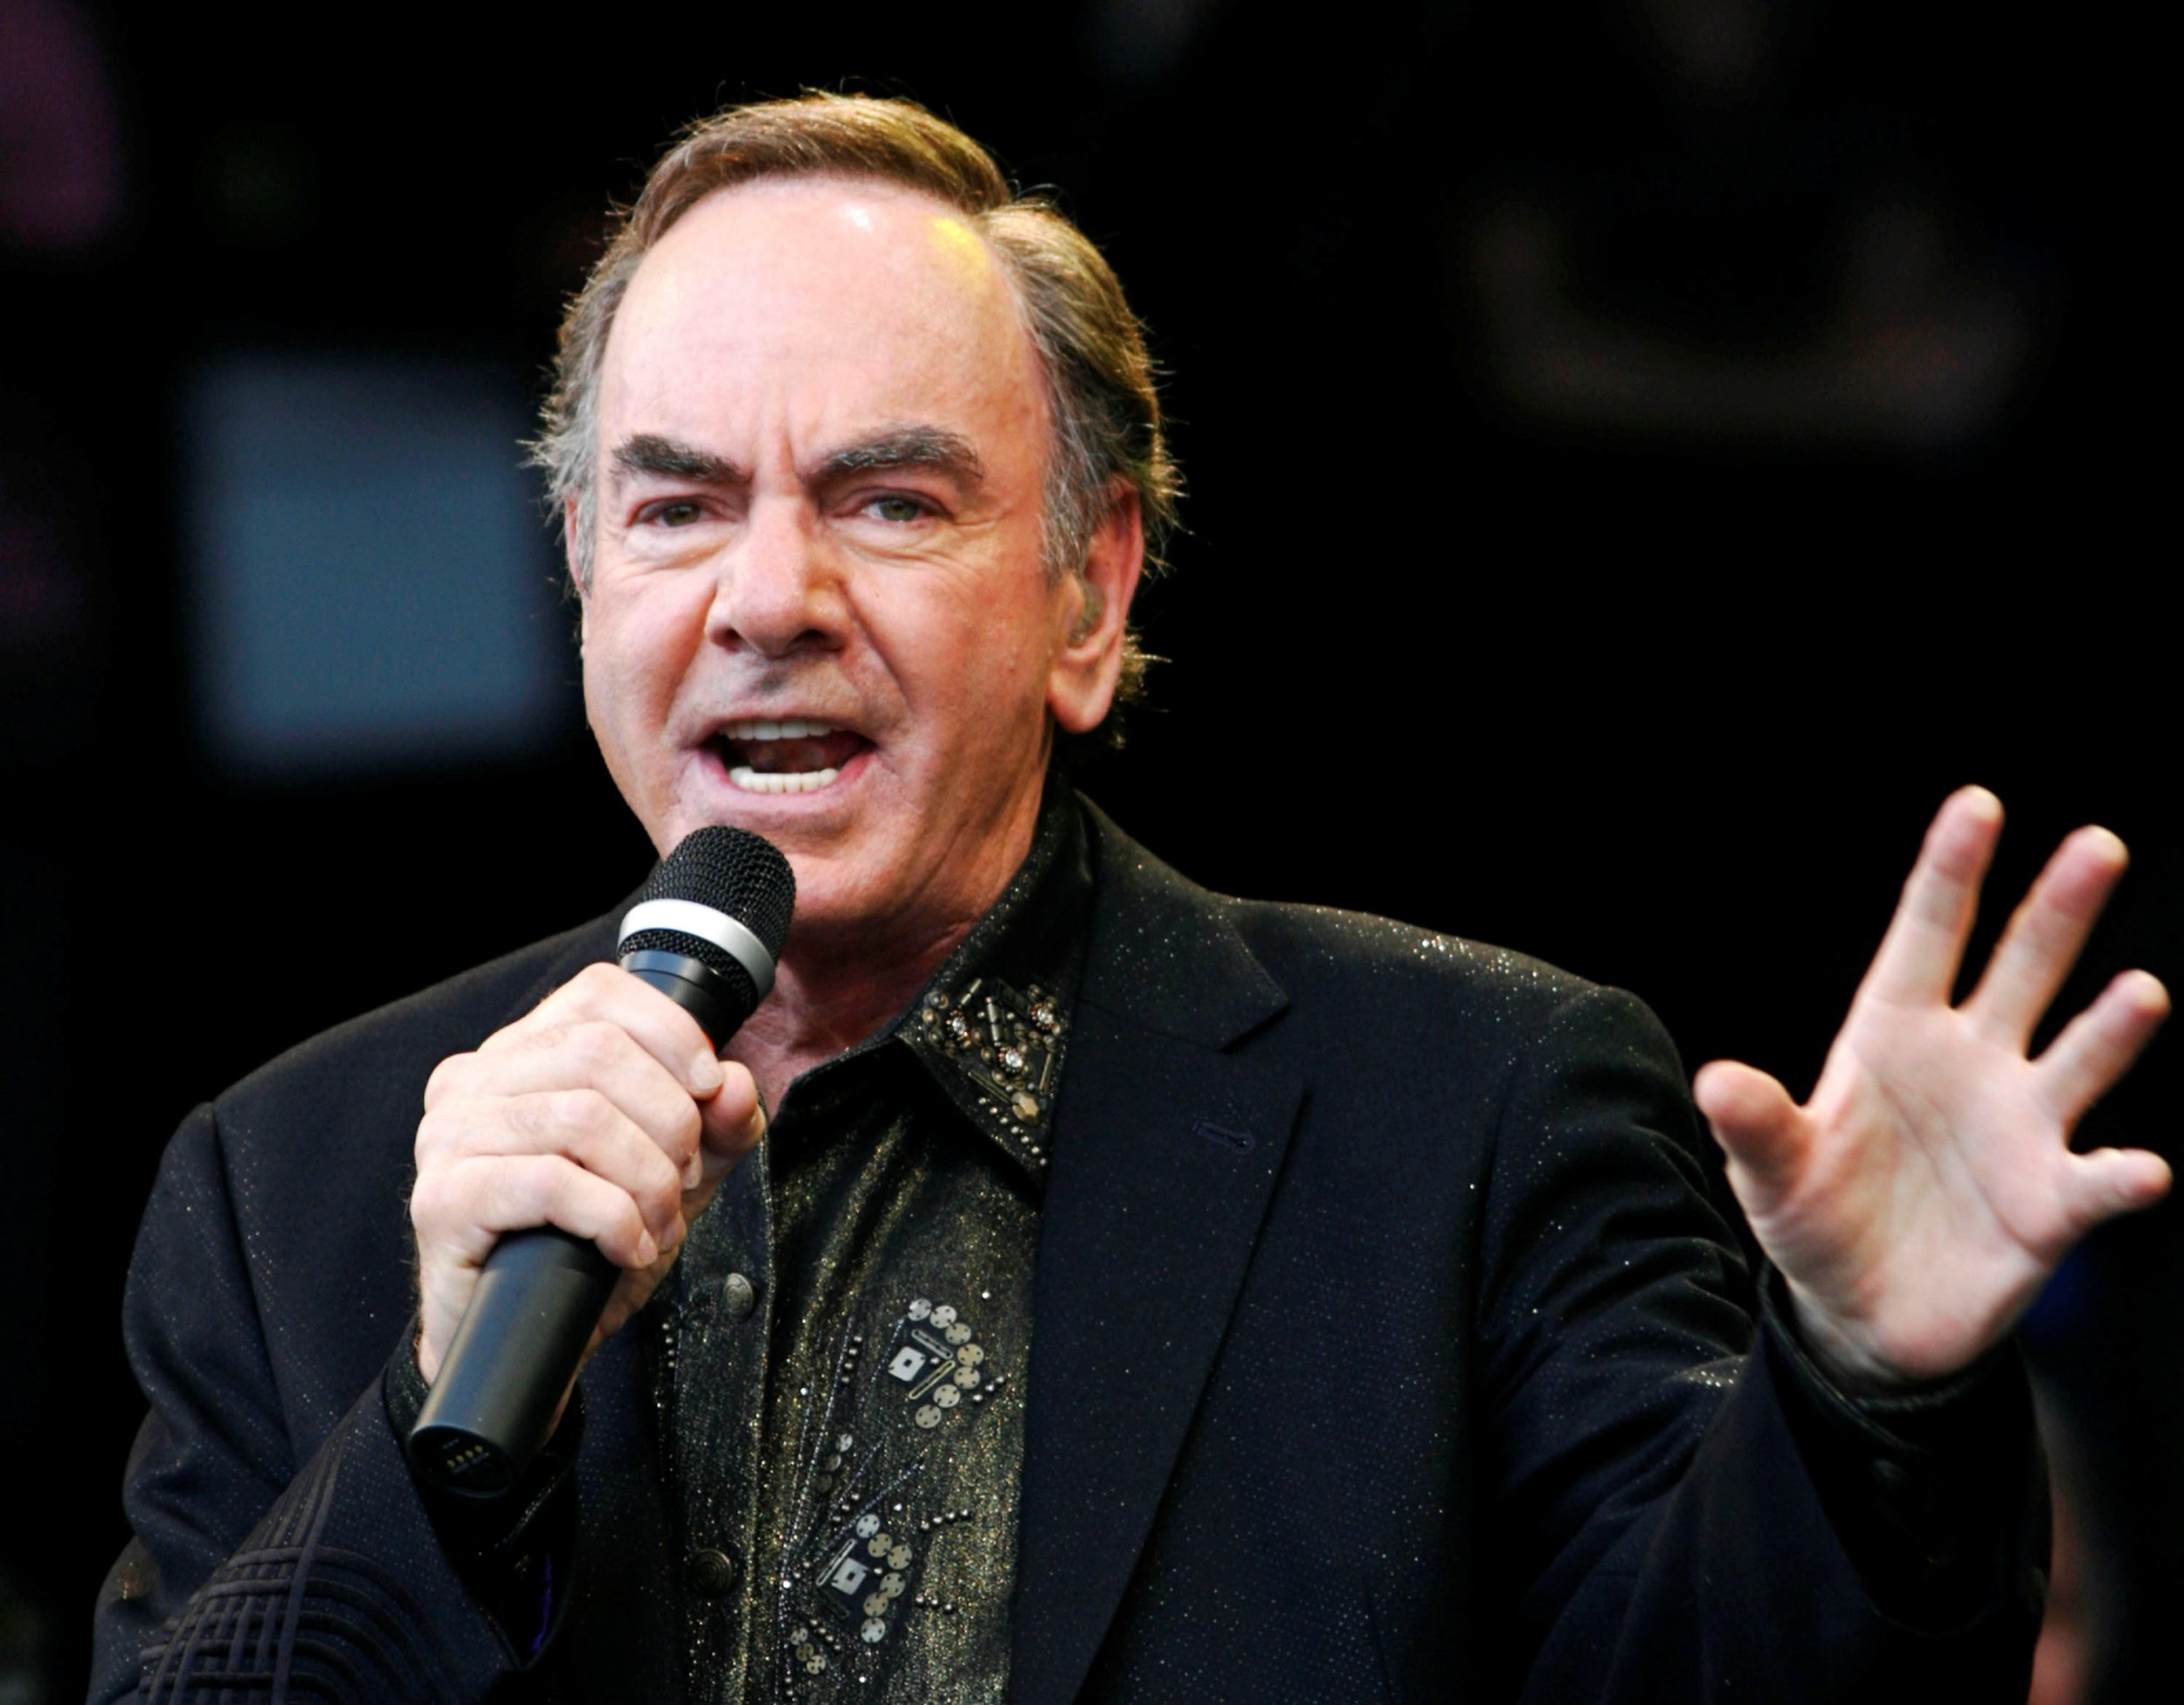 Neil Diamond retiring from touring